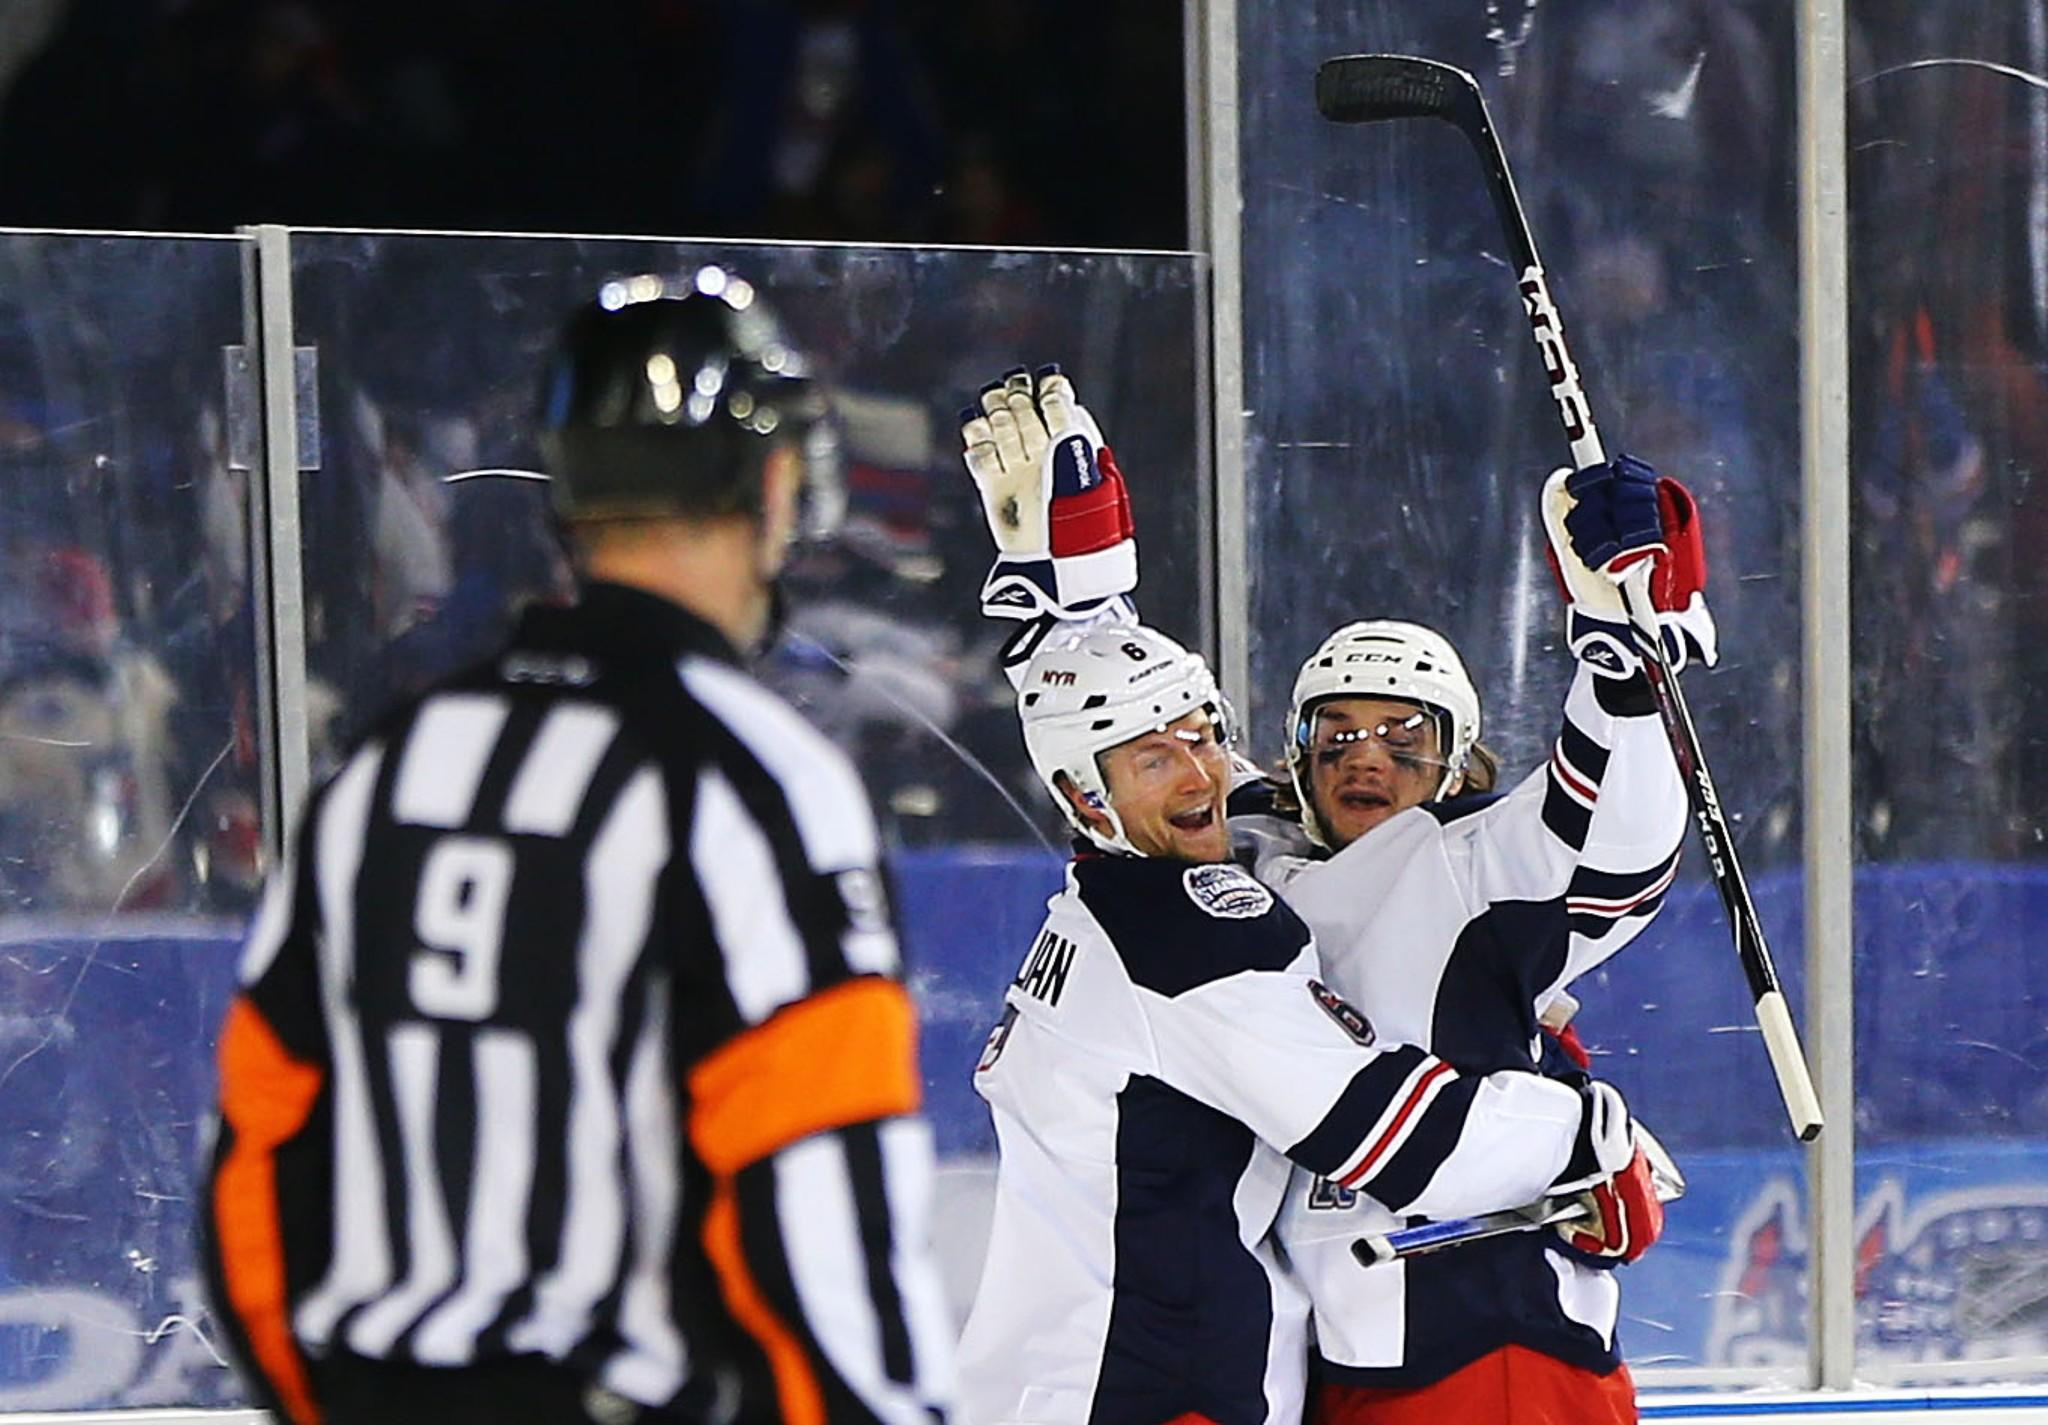 The Rangers' Daniel Carcillo celebrates his third period goal with Anton Stralman during the 2014 Coors Light NHL Stadium Series game against the Islanders at Yankee Stadium.